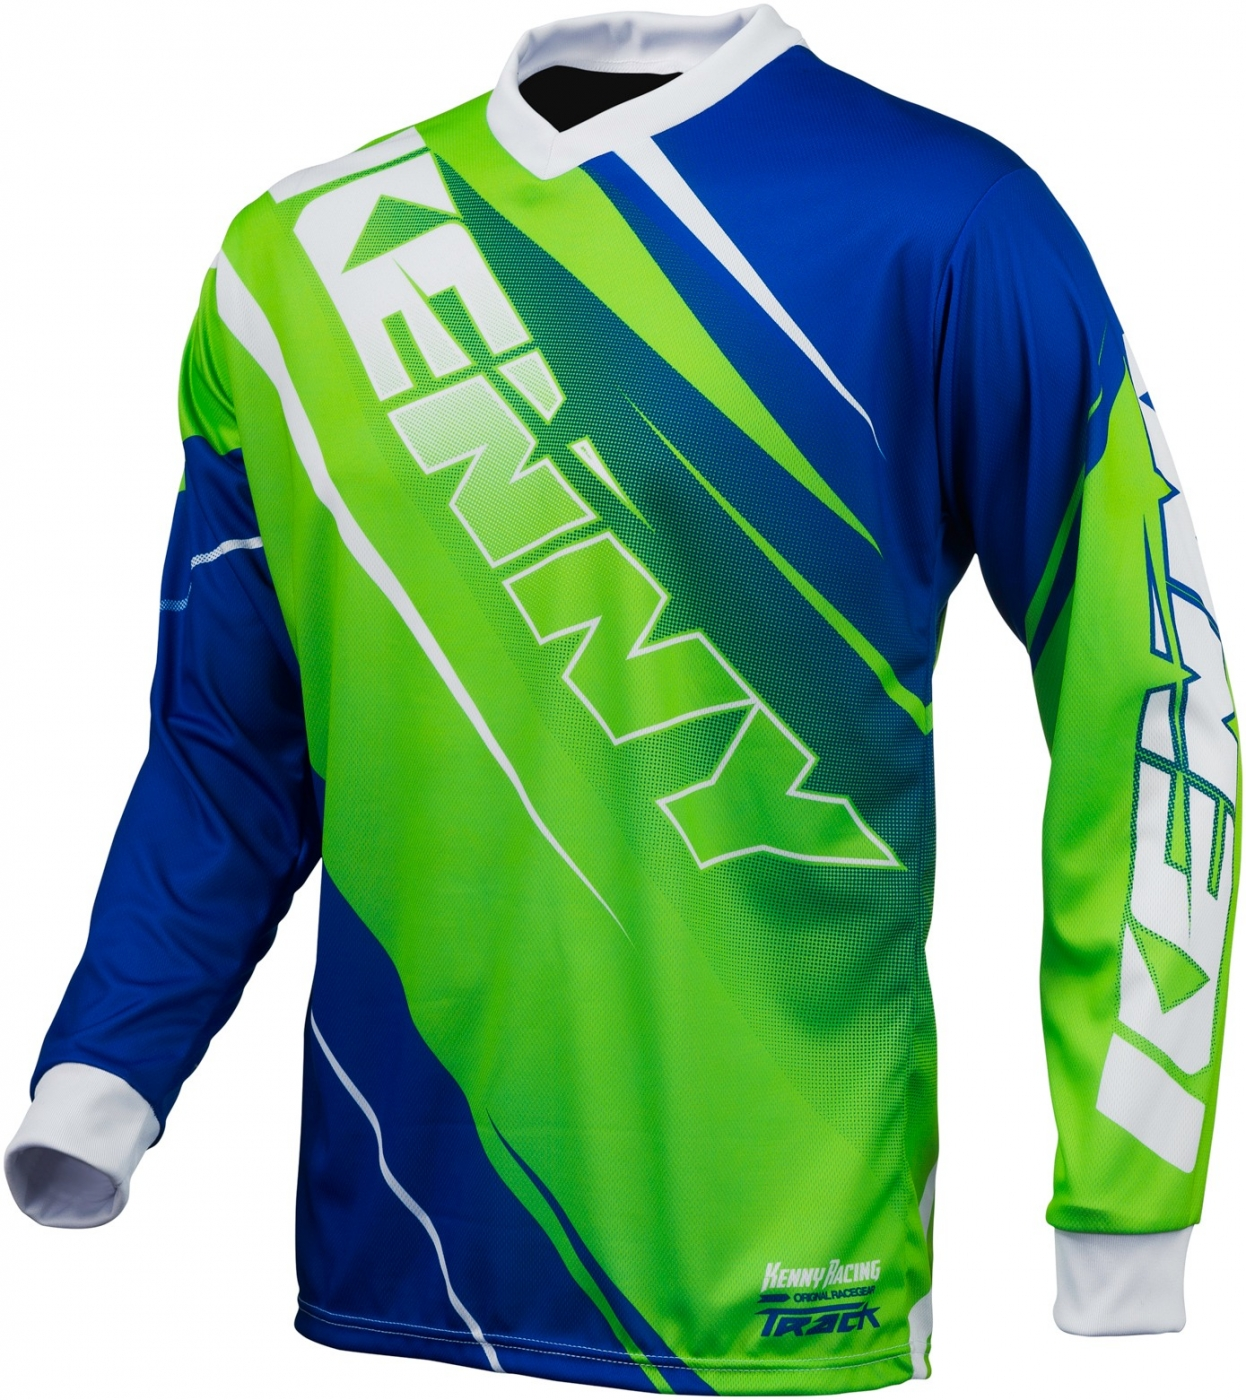 KENNY dres TRACK 16 neon green / blue